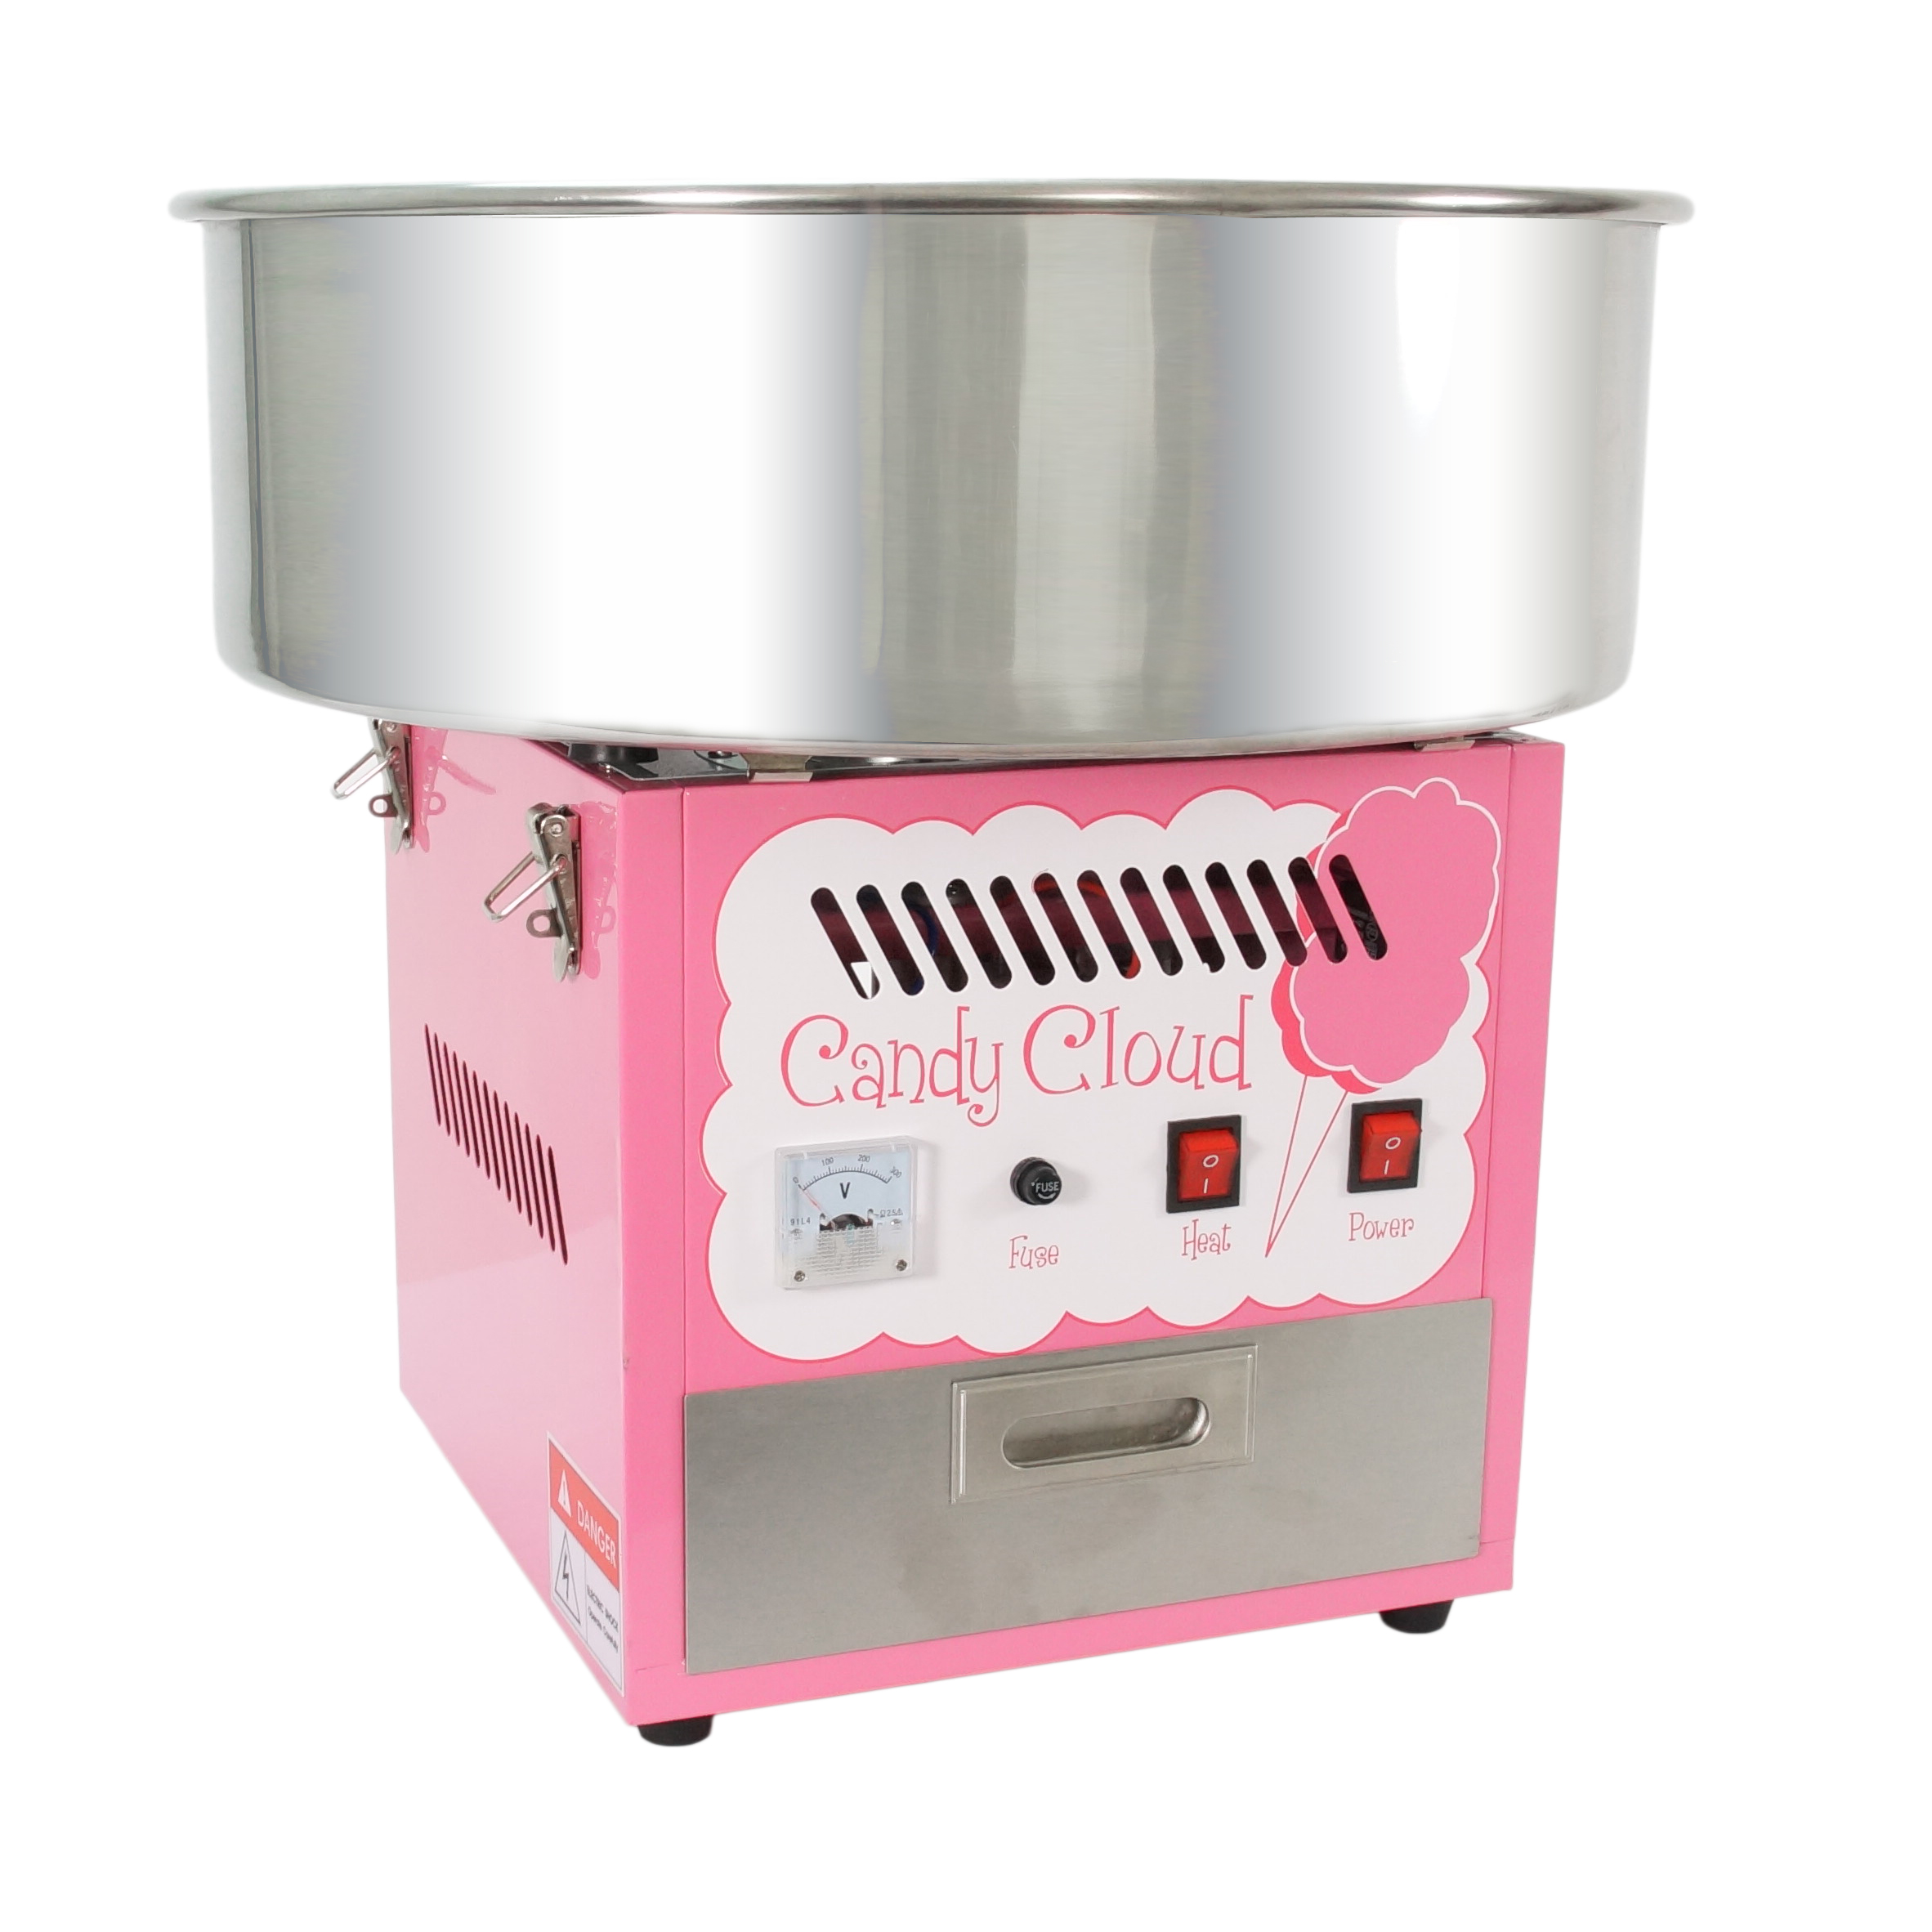 Fun Time Commercial Candy Cloud Cotton Hard Candy Machine Floss Maker - FT1000CC at Sears.com